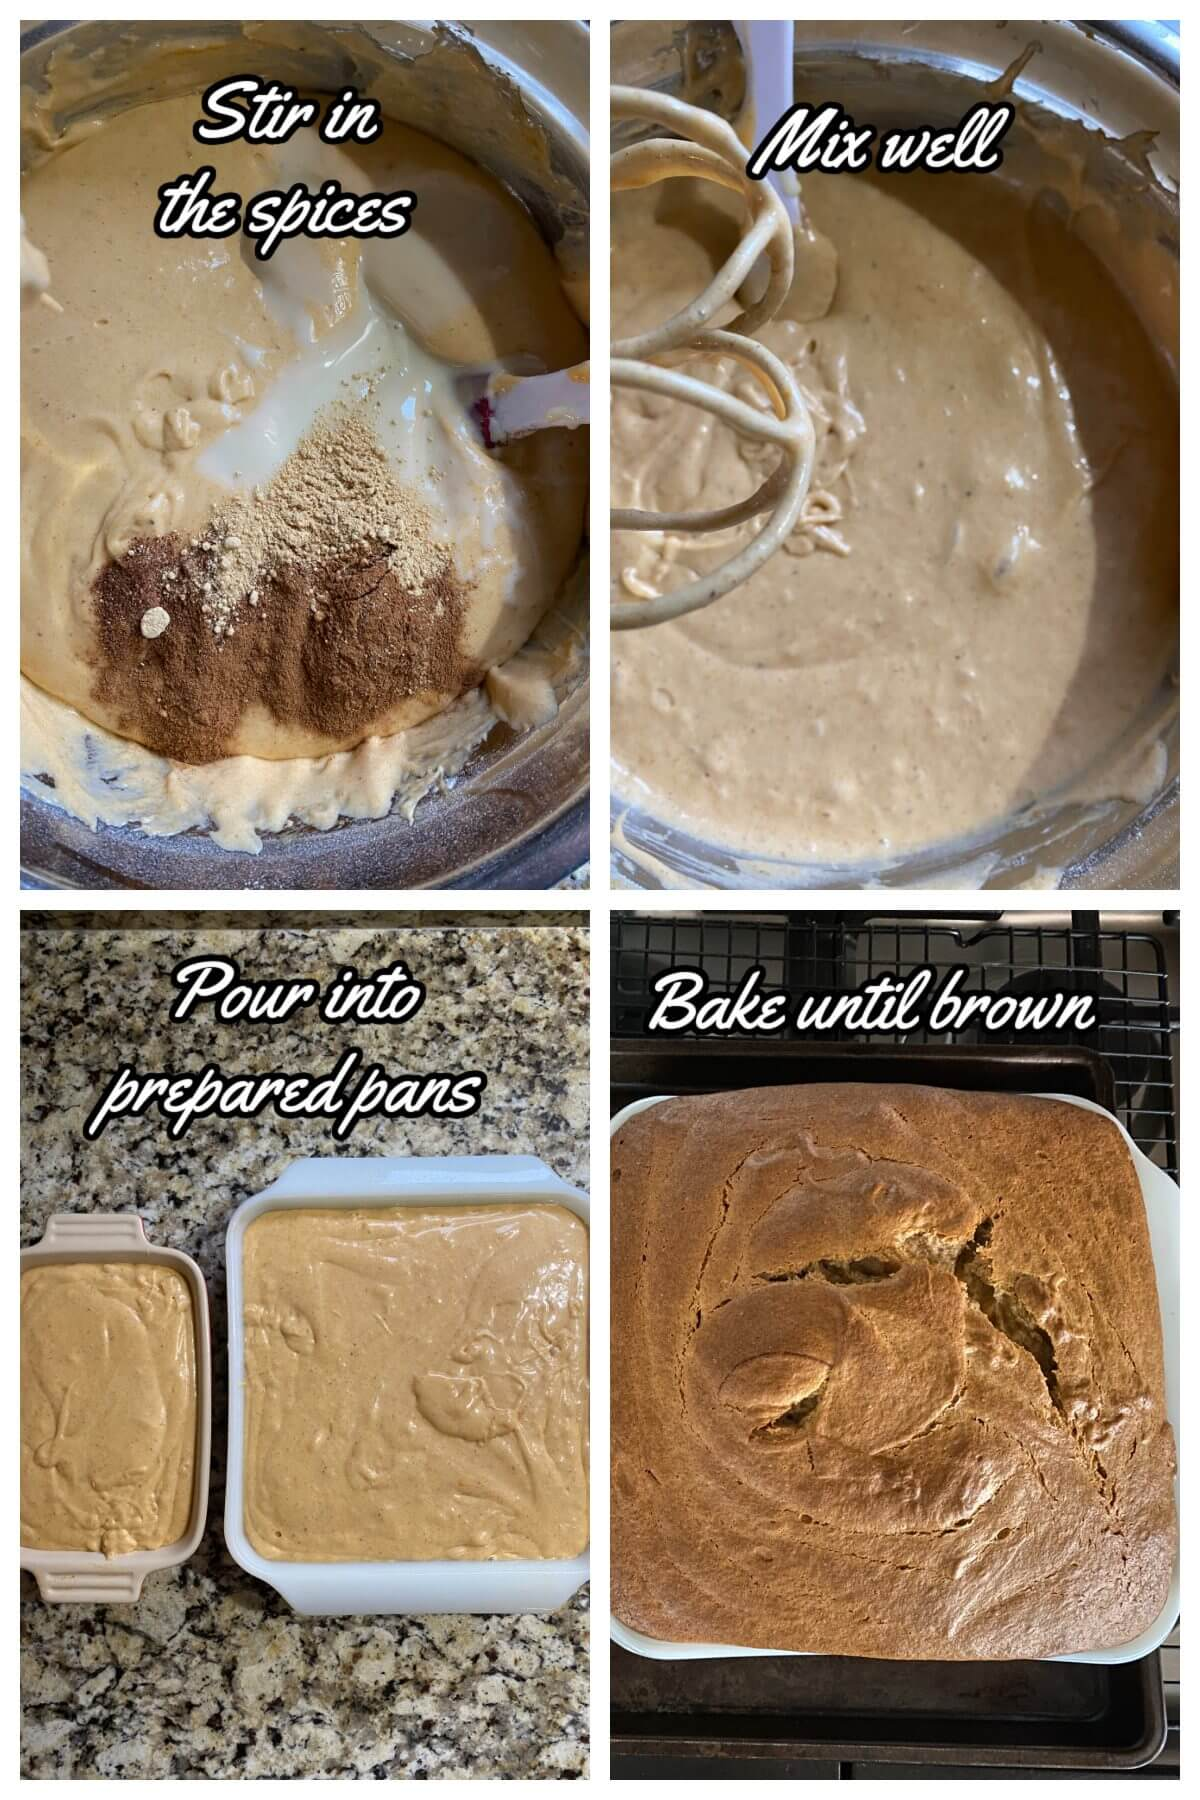 Direction collage for Persimmon Pudding steps 5-8